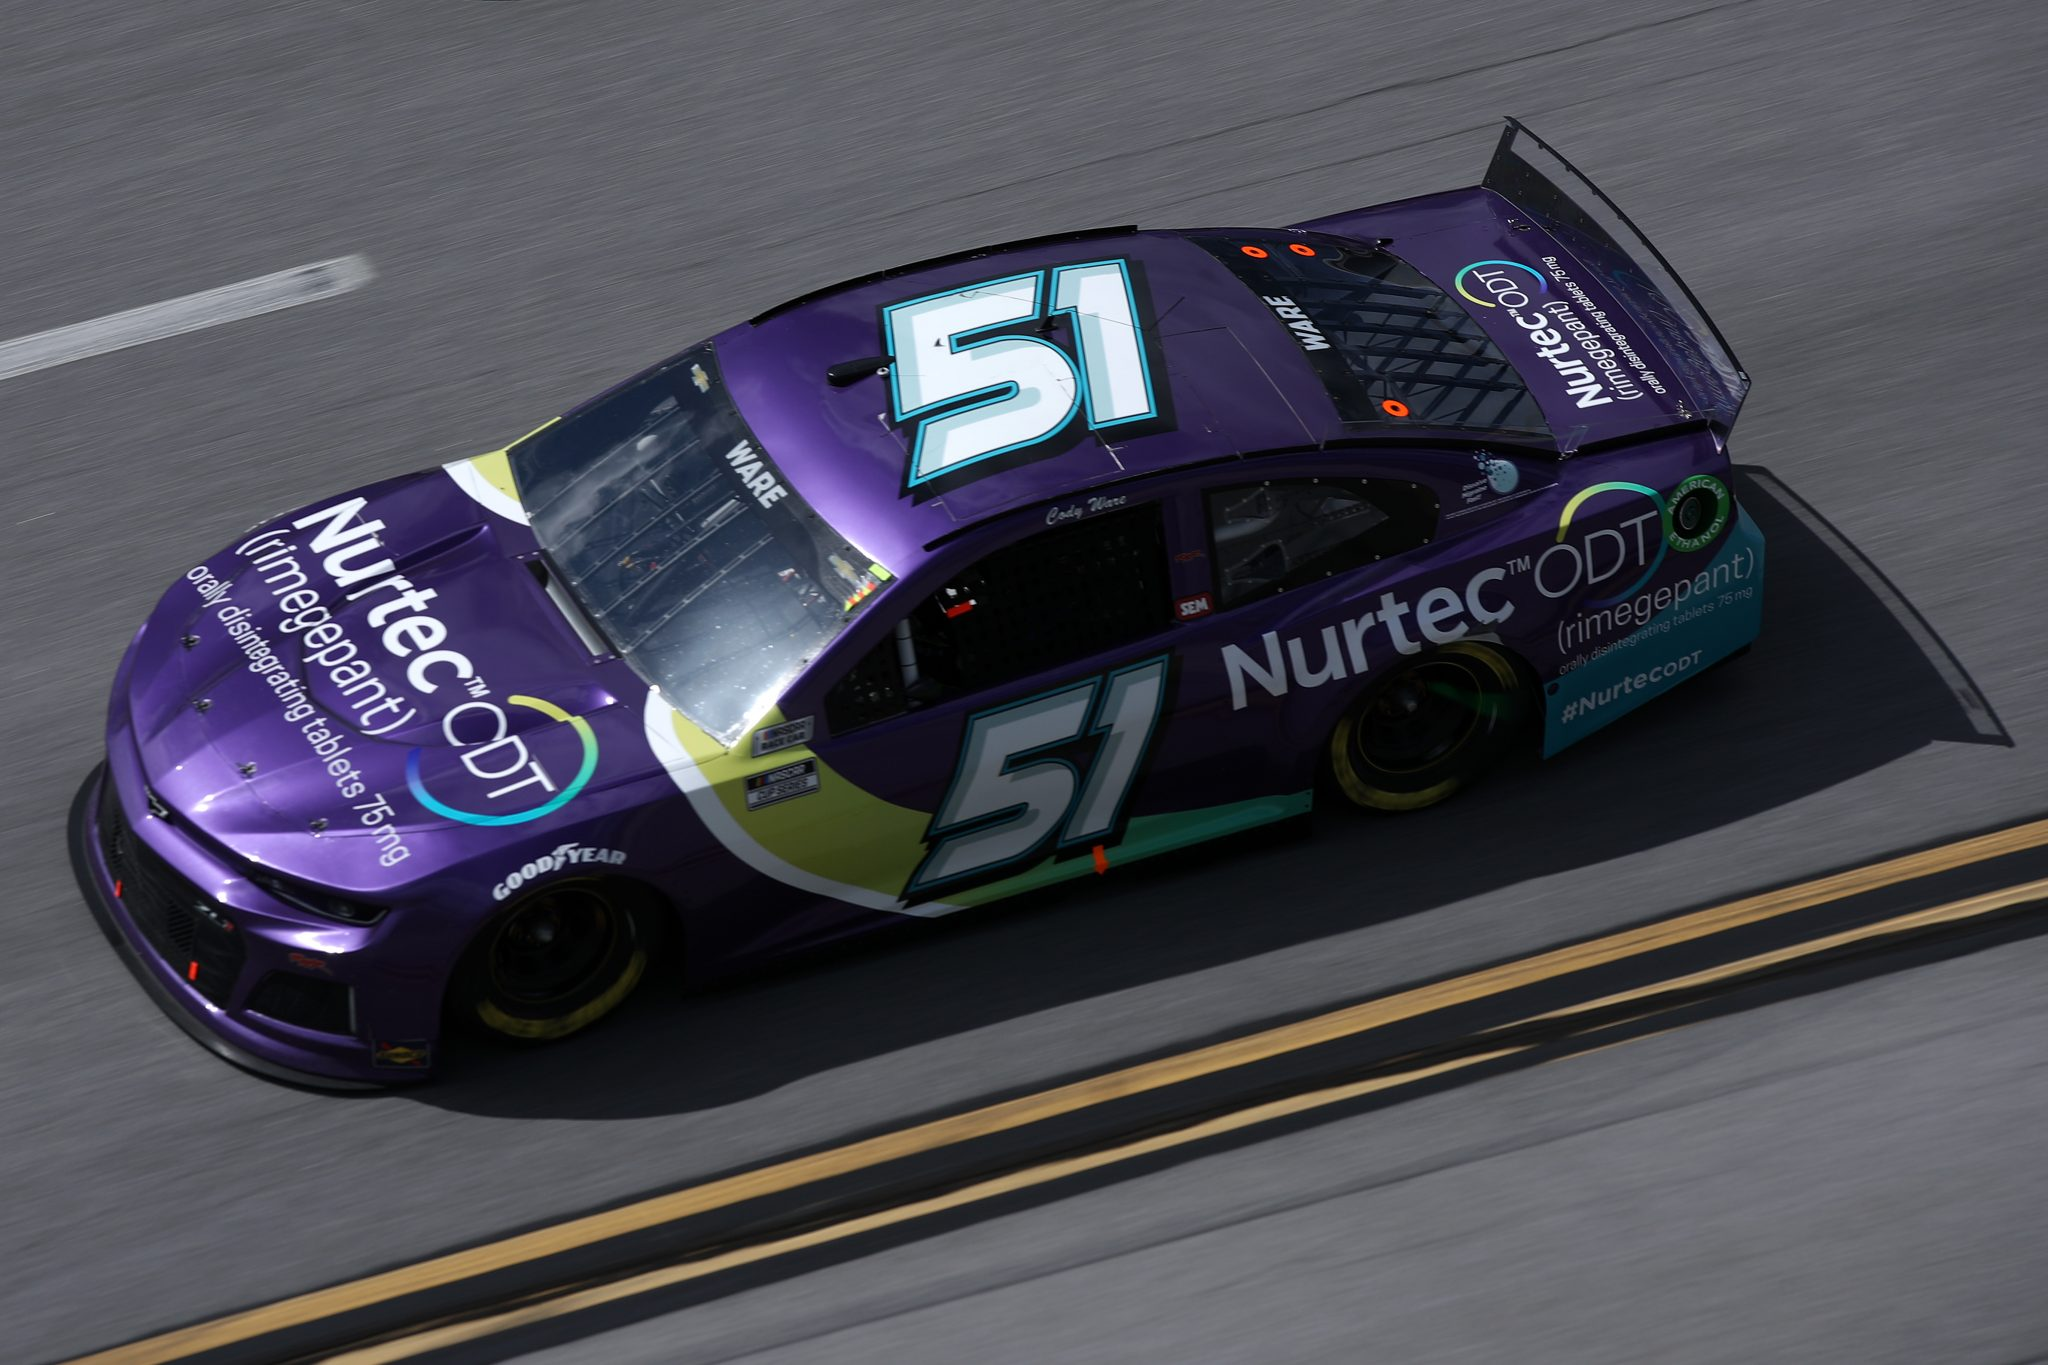 TALLADEGA, ALABAMA - APRIL 25: Cody Ware, driver of the #51 Nurtec ODT Chevrolet, drives during the NASCAR Cup Series GEICO 500 at Talladega Superspeedway on April 25, 2021 in Talladega, Alabama. (Photo by Sean Gardner/Getty Images) | Getty Images